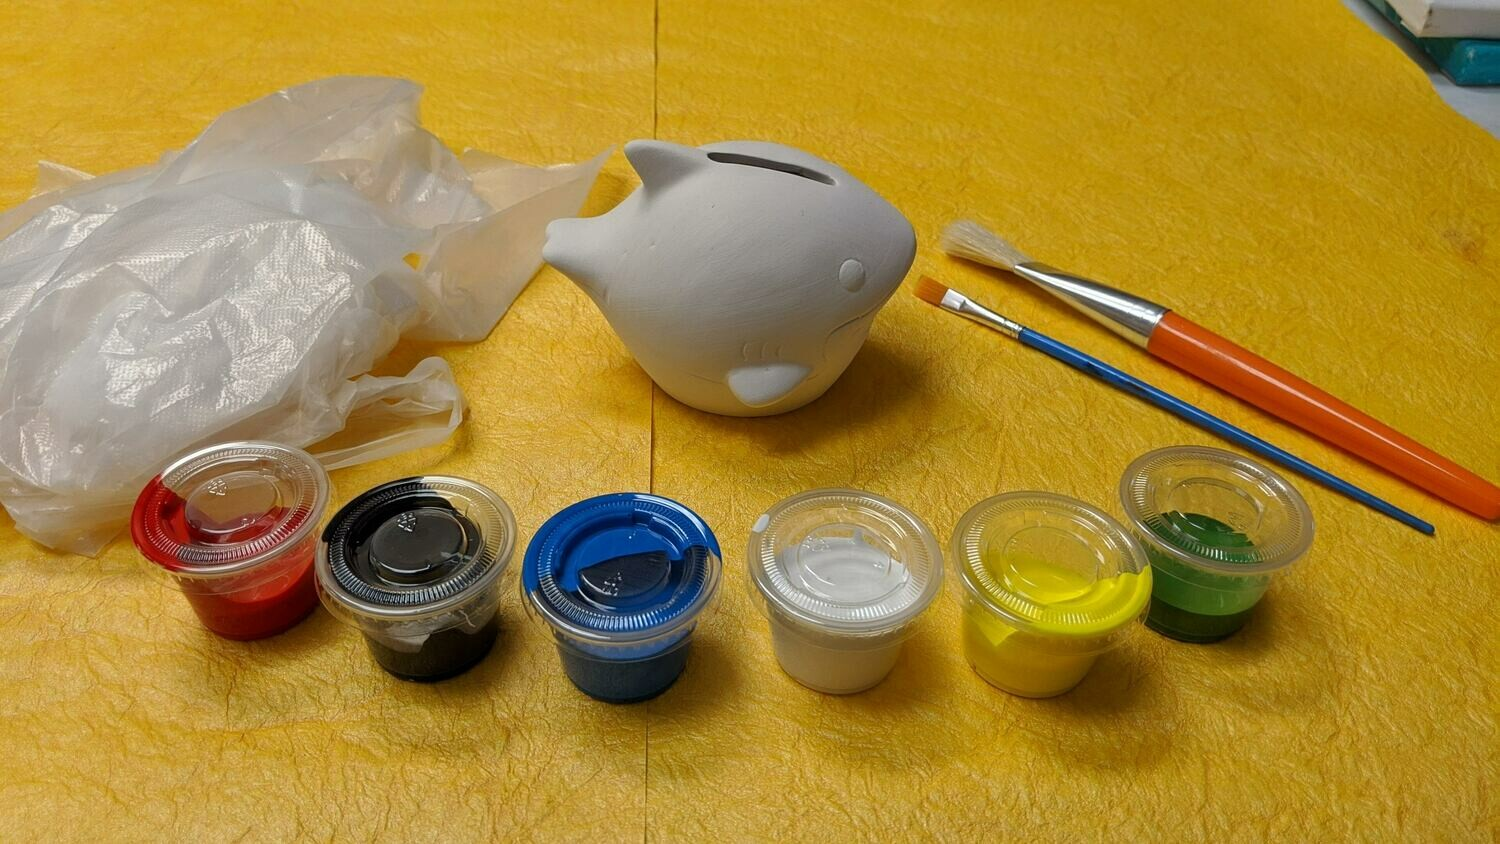 Various Plaster Figurines to paint for kids' Art Craft Activity or Birthday activities with brushes, paints, and apron.